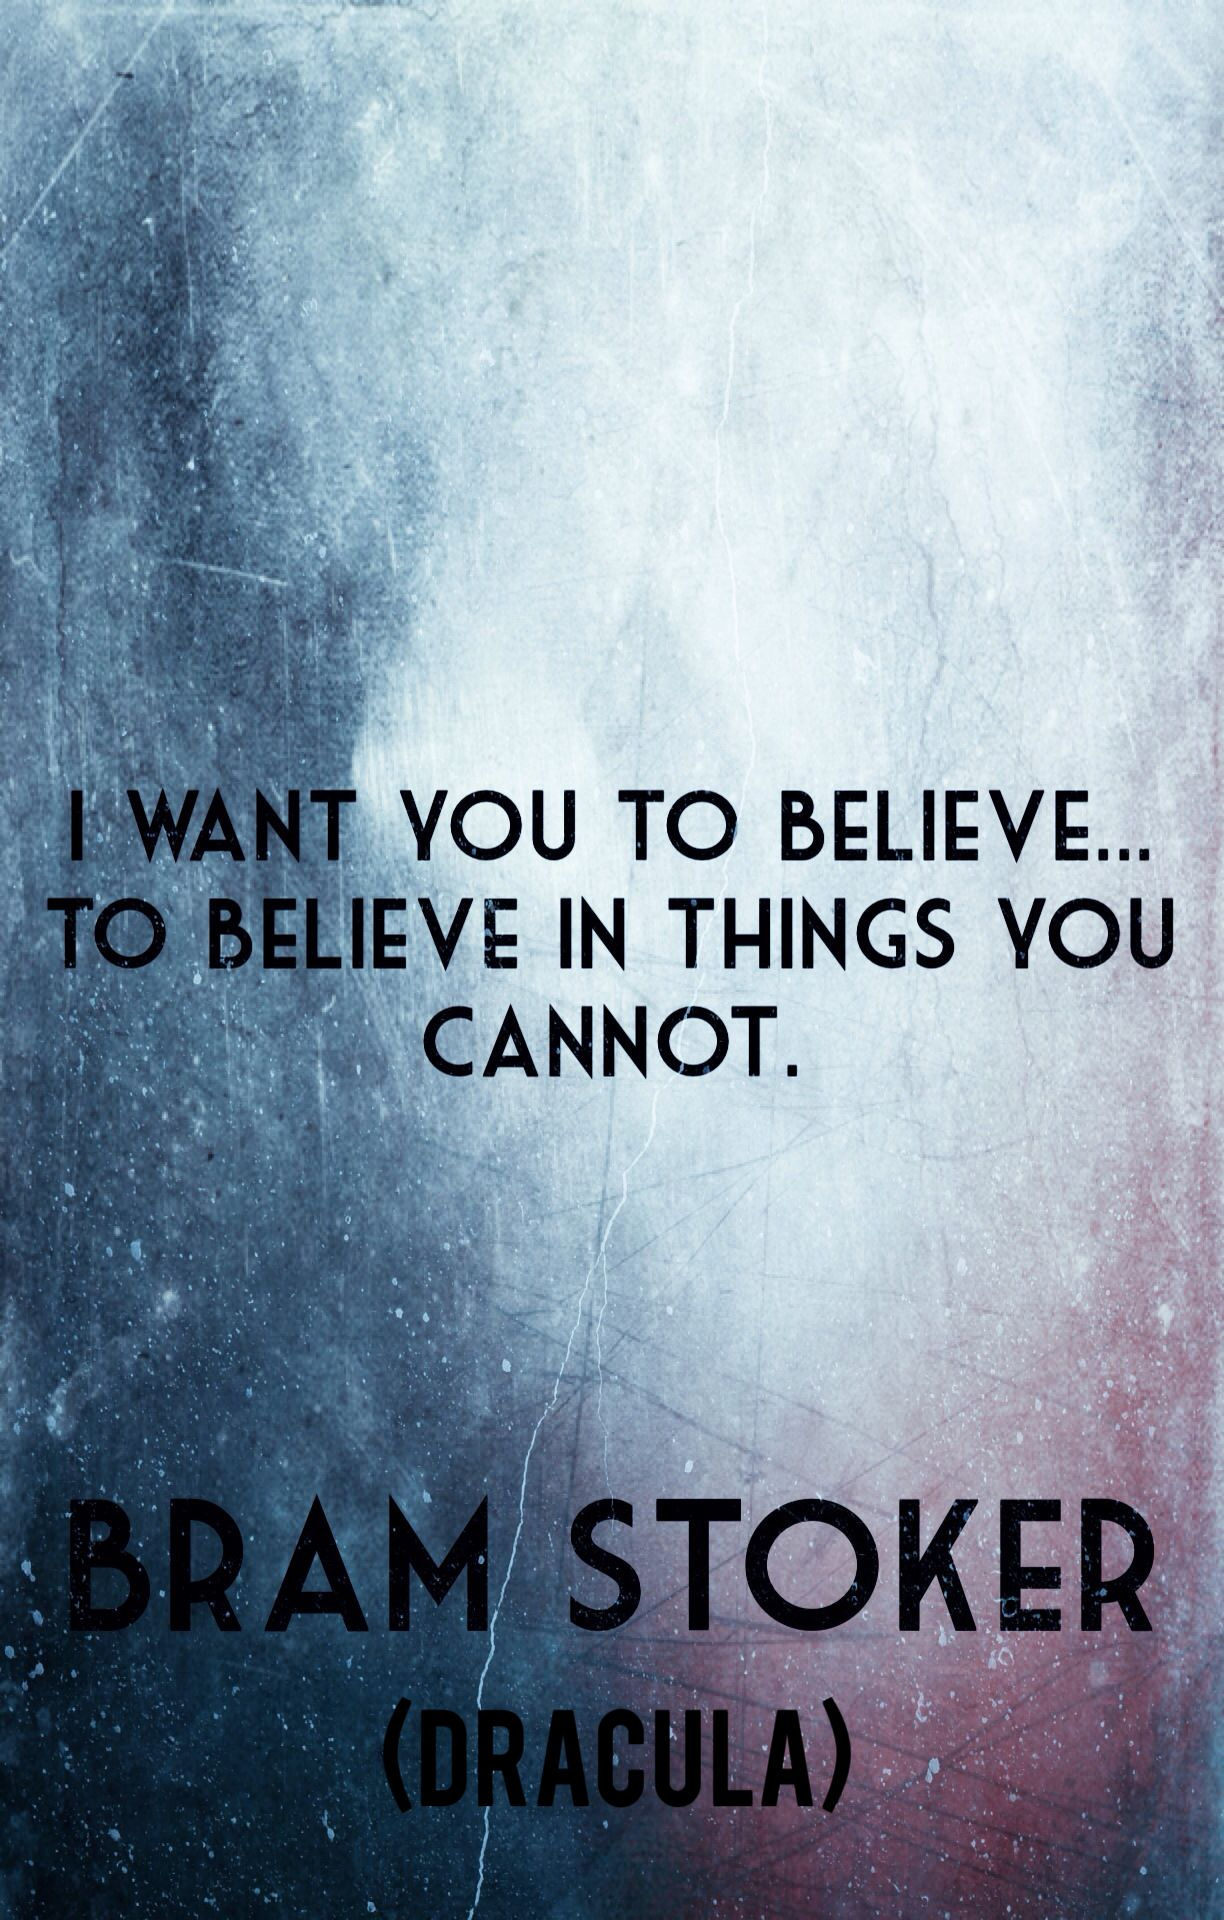 dracula by bram stoker quotes  quotesgram